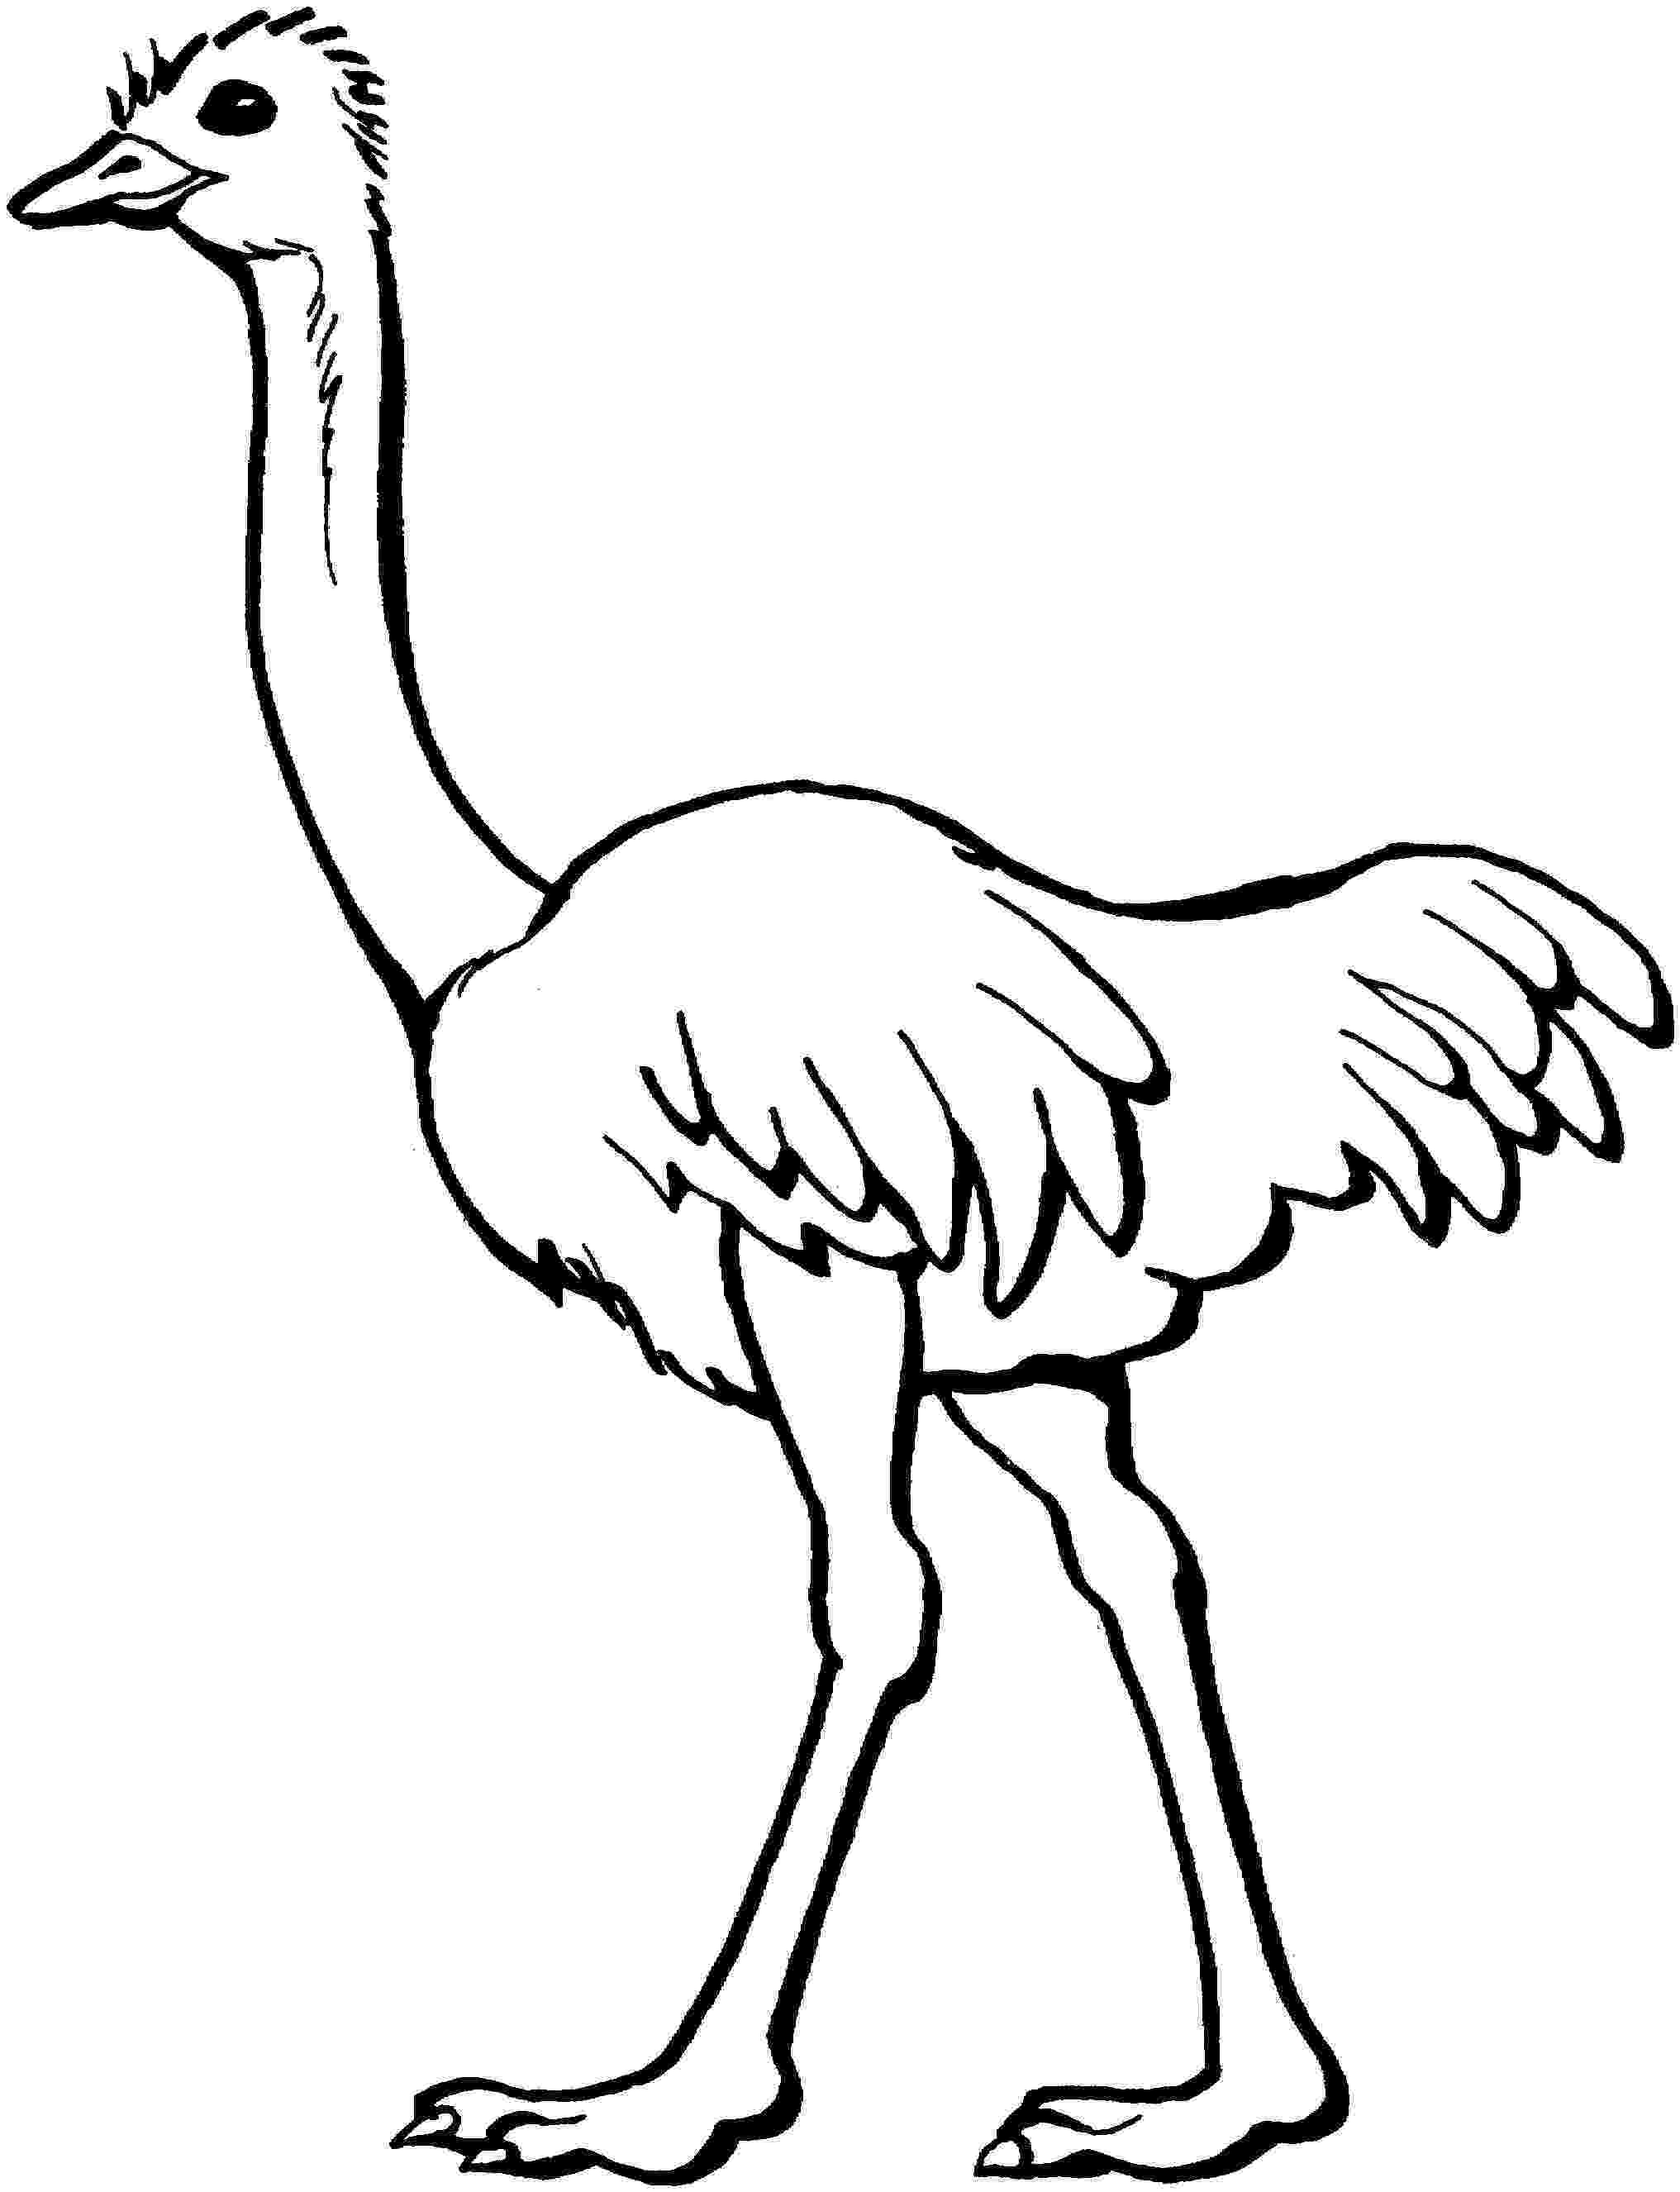 ostrich coloring page free printable ostrich coloring pages for kids coloring ostrich page 1 1